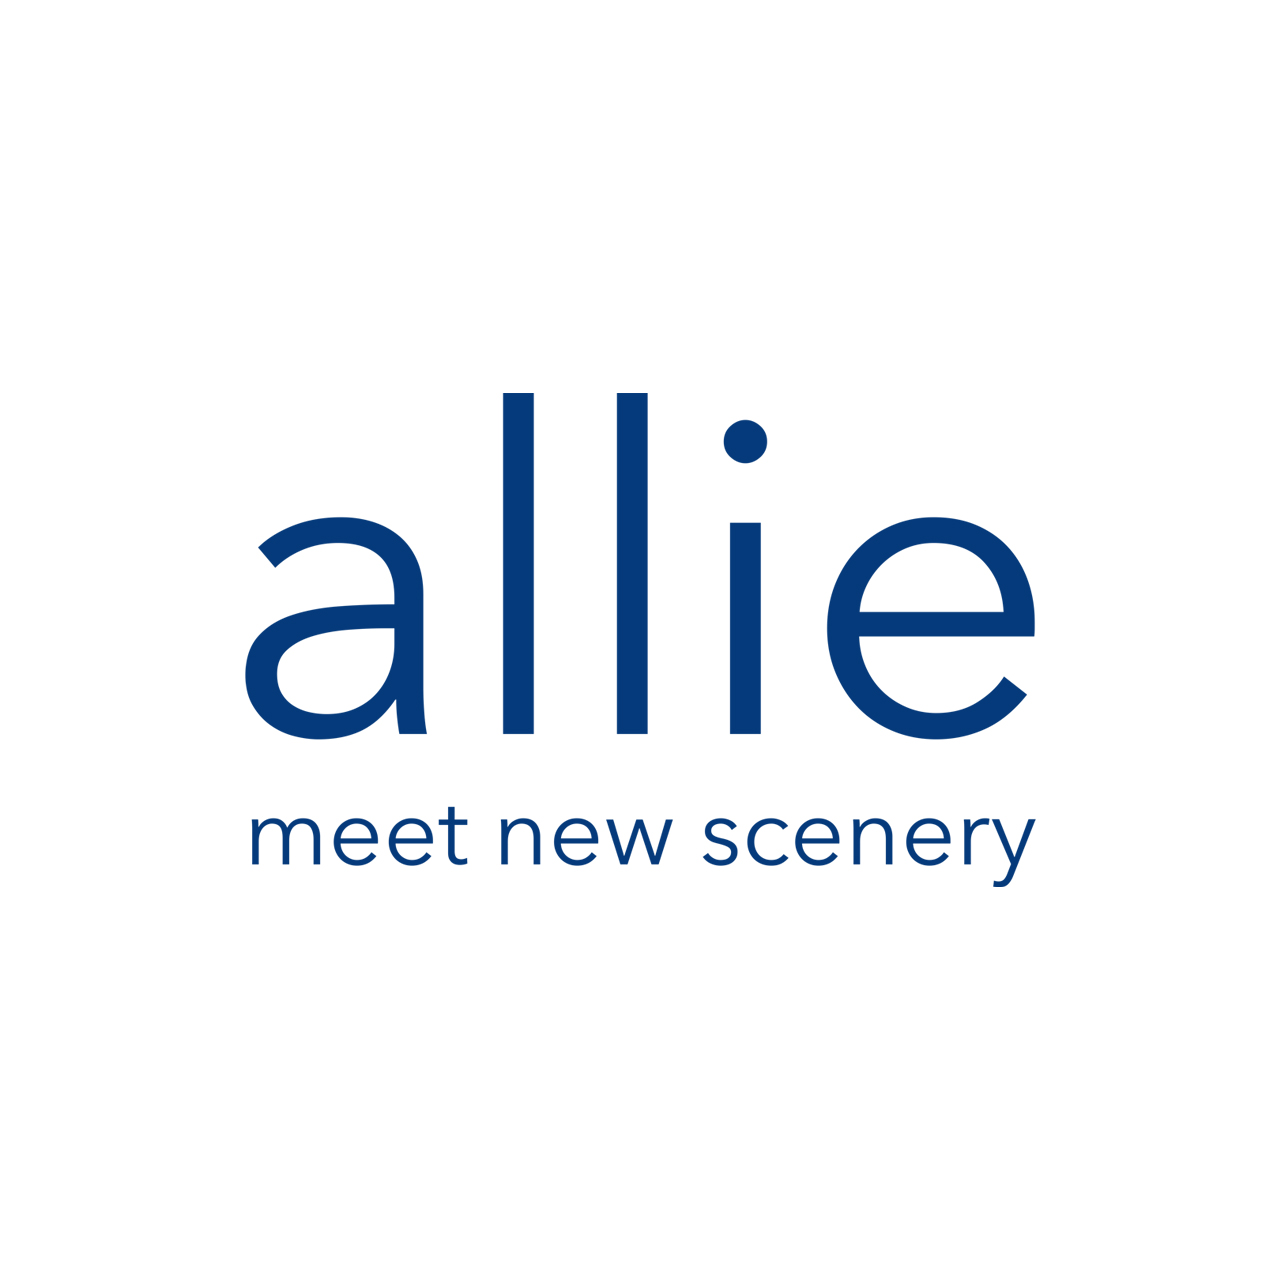 株式会社アリー allie – meet new scenery